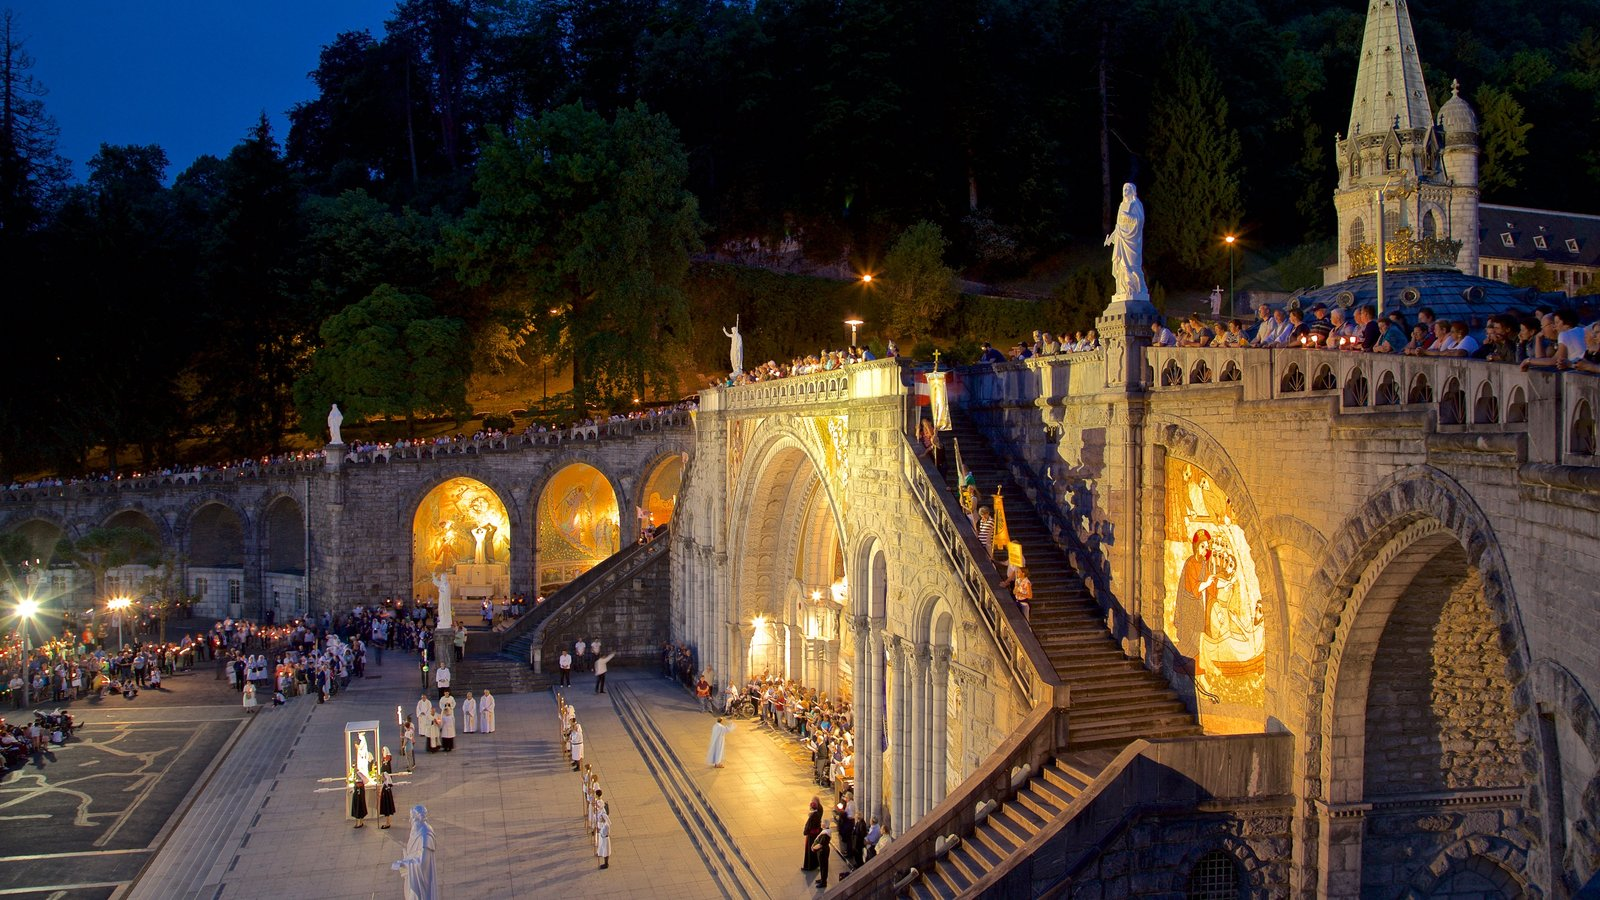 Rosary Basilica showing heritage architecture and night scenes as well as a large group of people